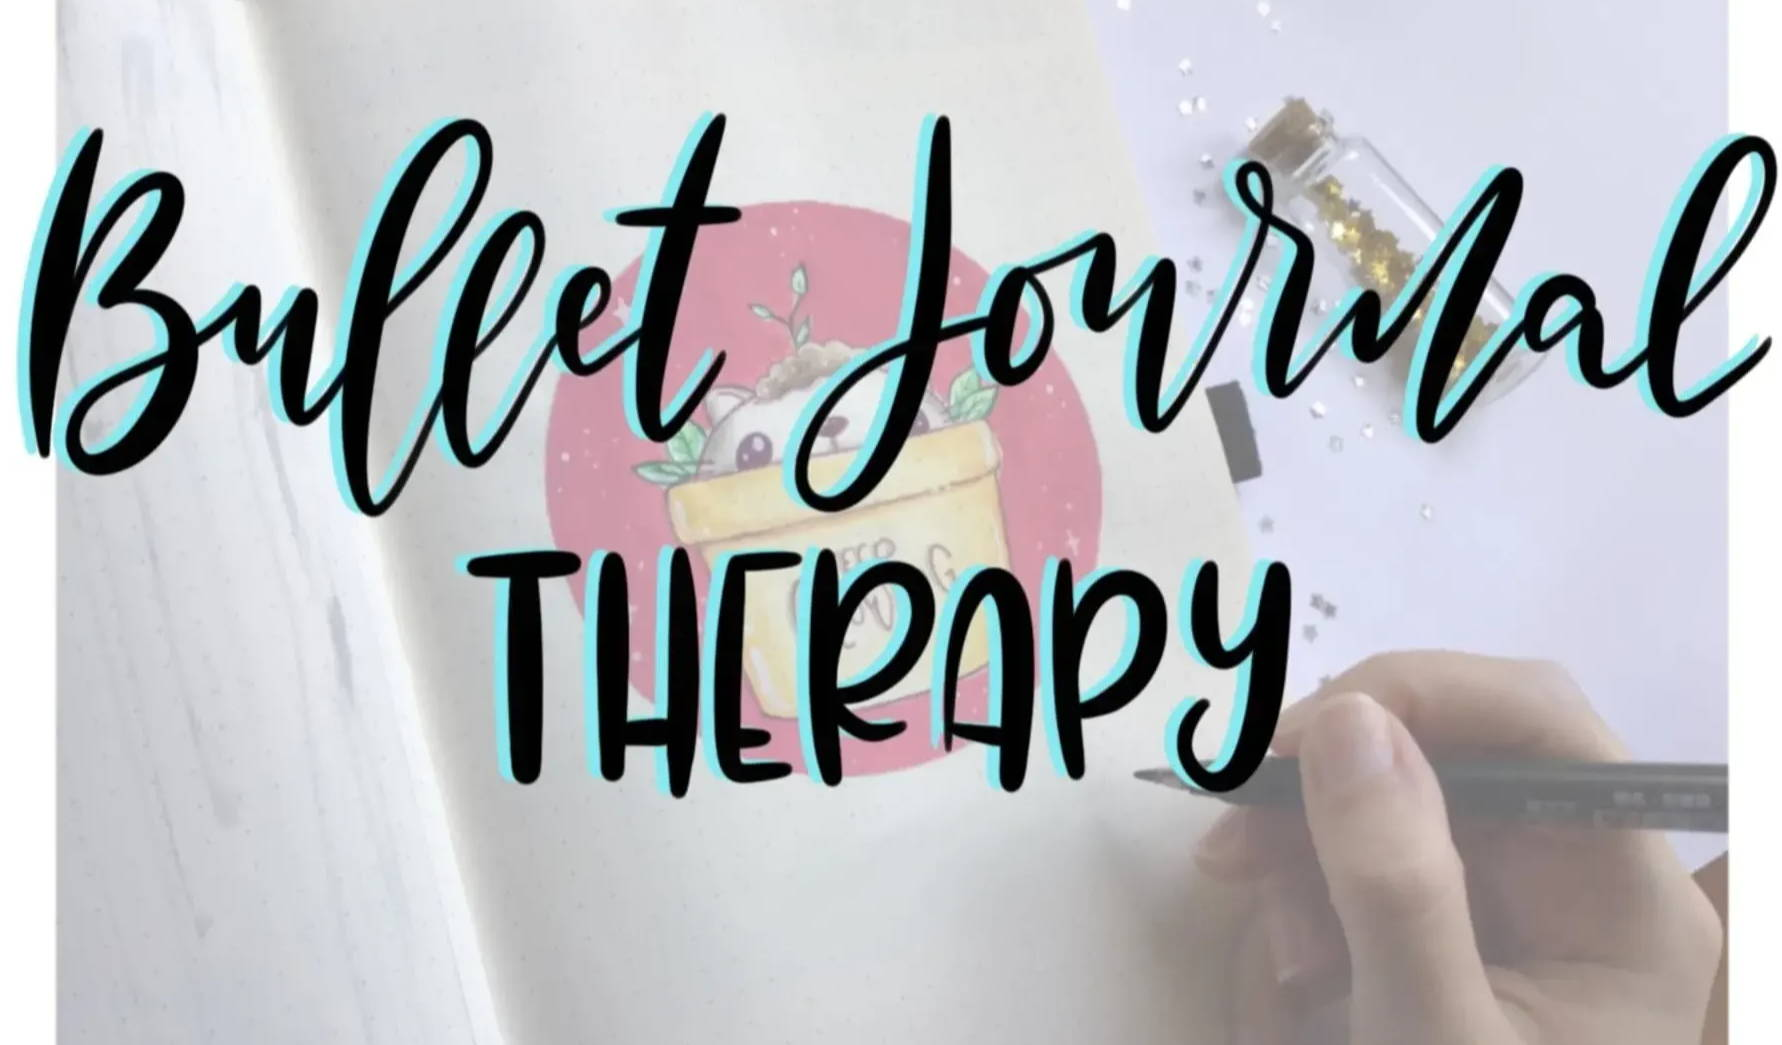 Bullet Journal Therapy